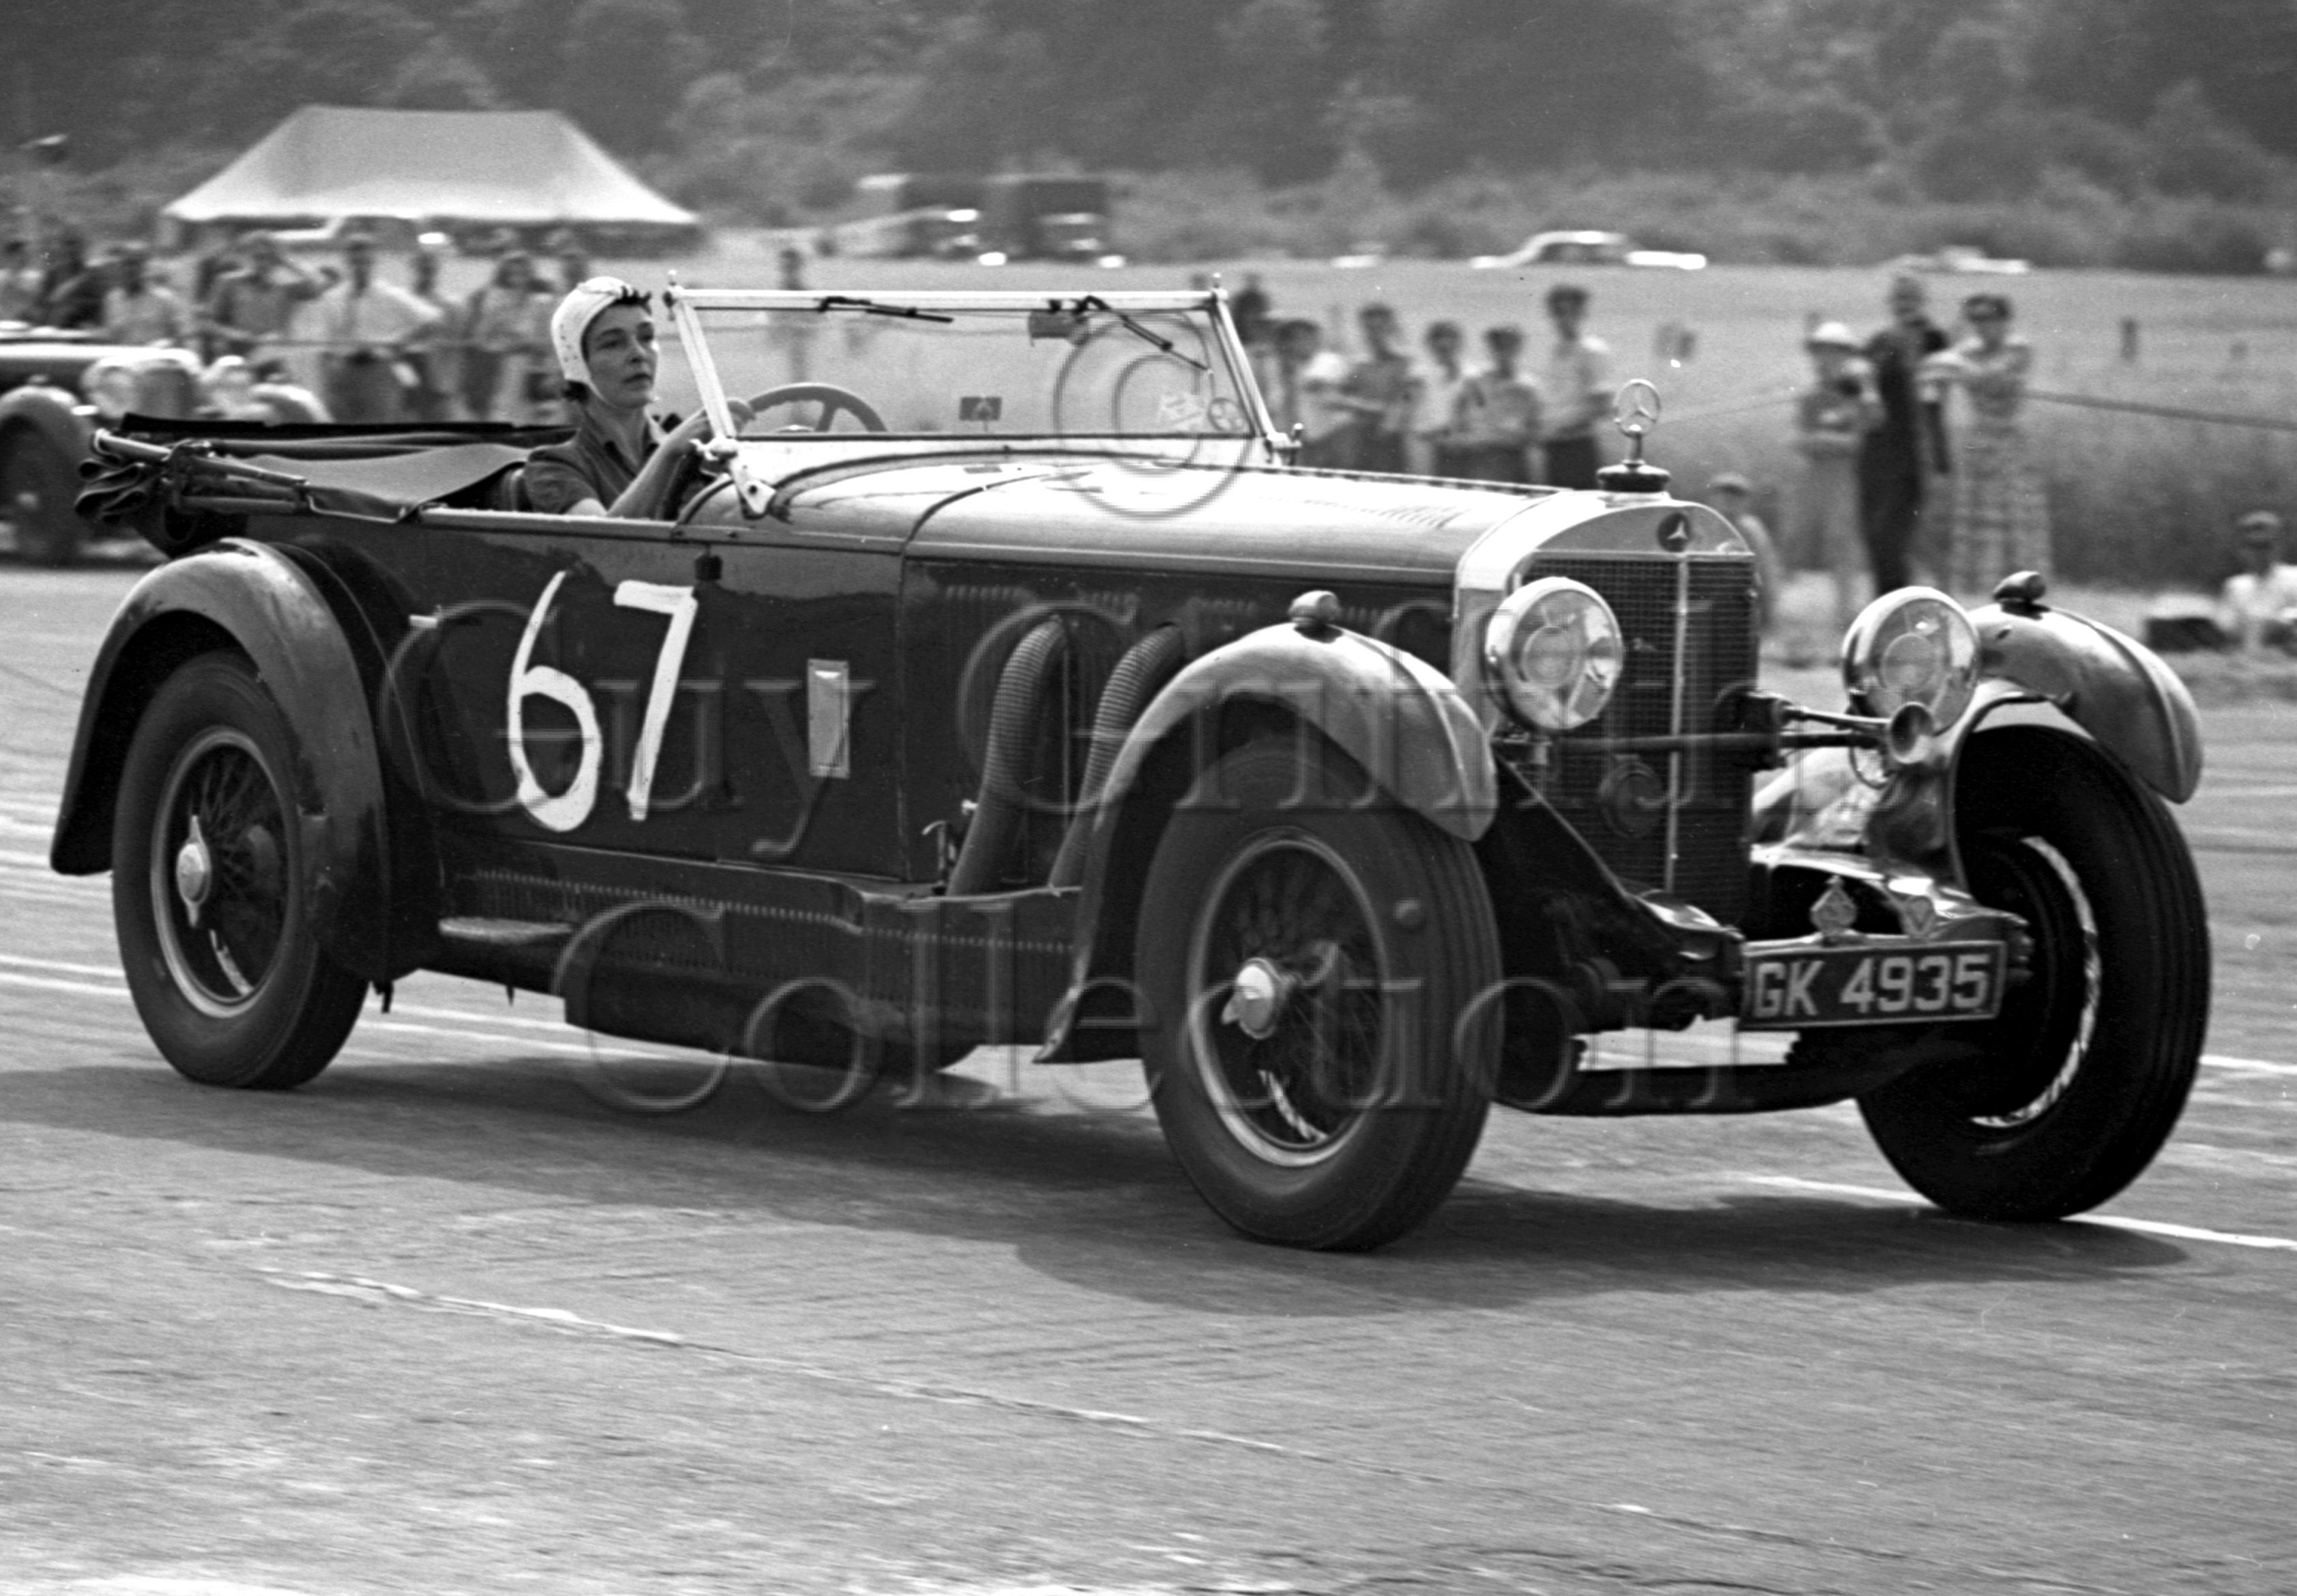 19-151-Mrs-H-L-Kennard–Mercedes-Benz–Silverstone–23-07-1949.jpg - The Guy Griffiths Collection